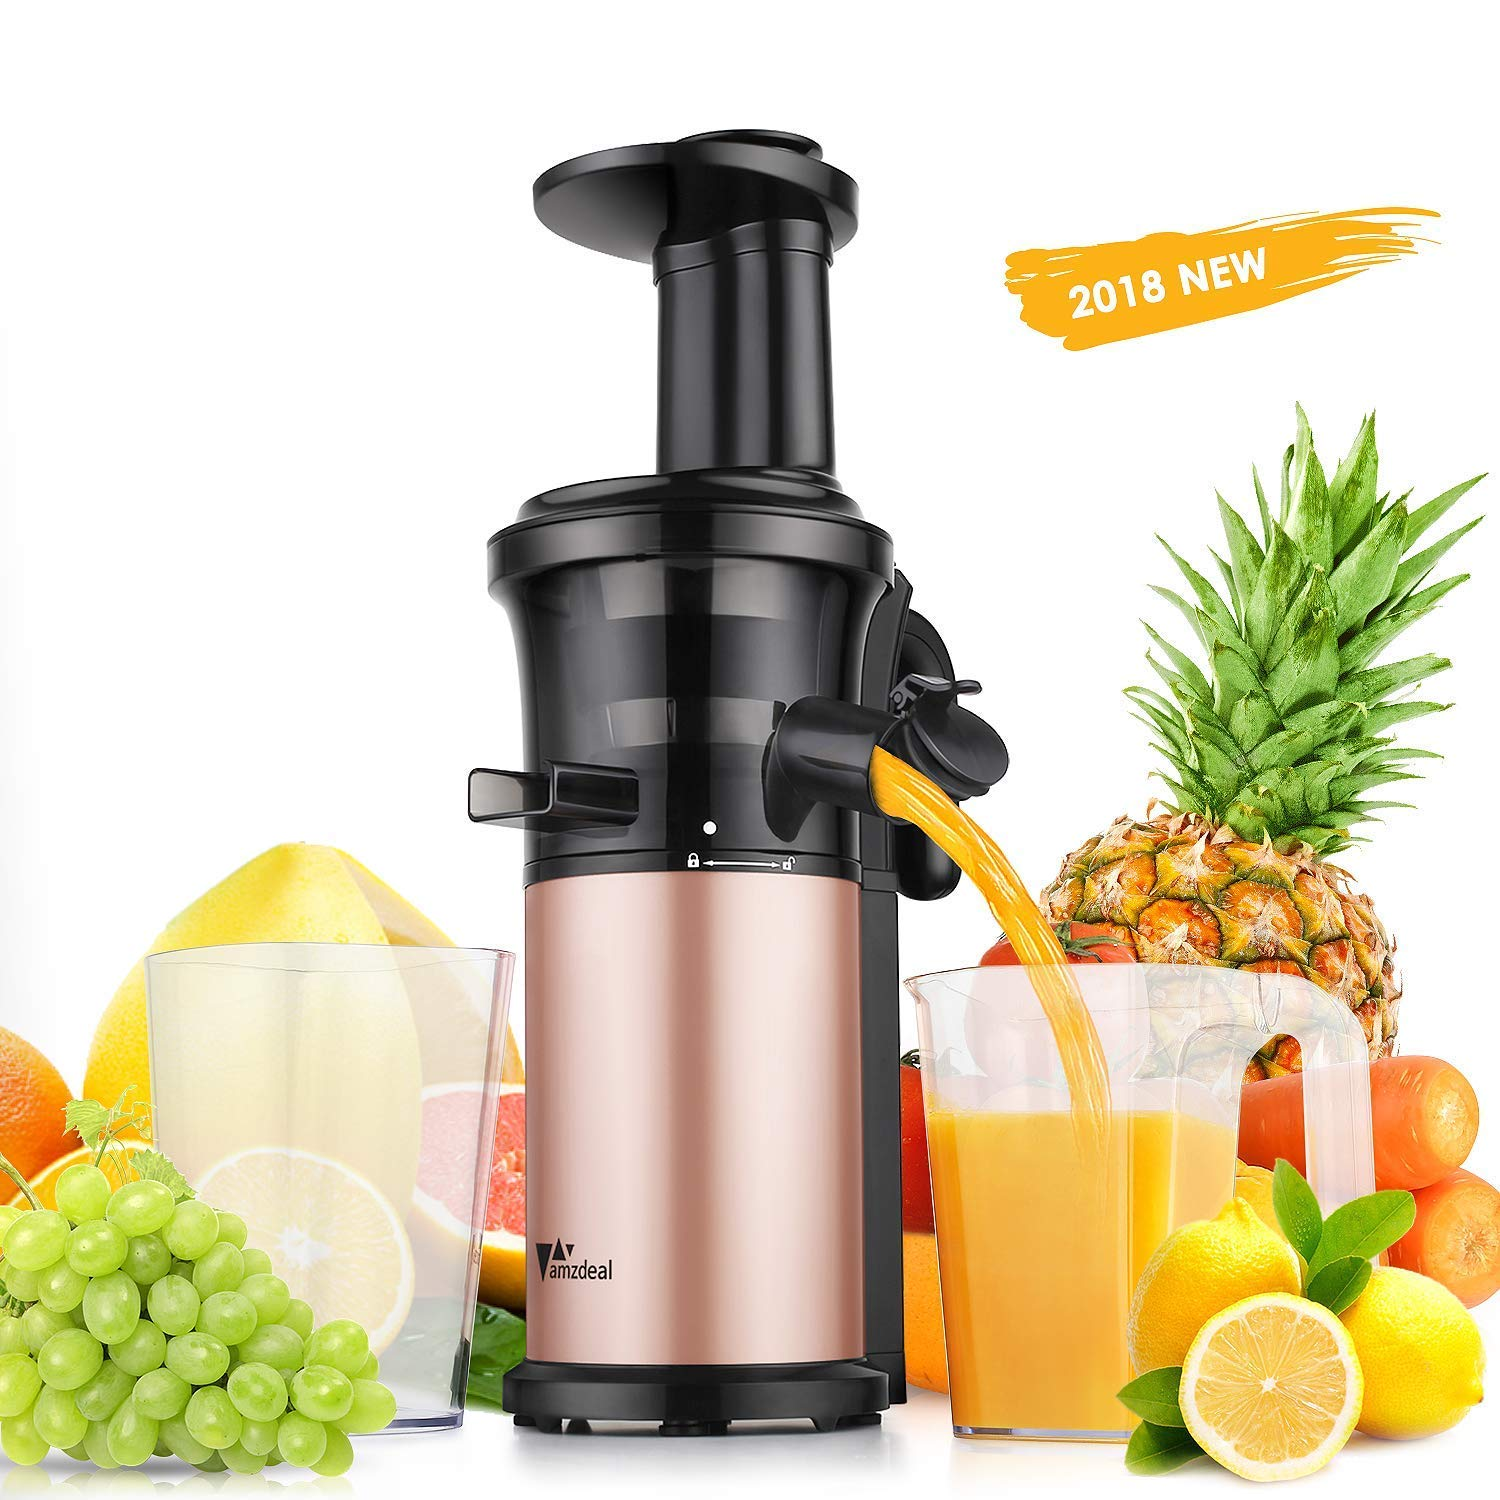 Juicer Amzdeal Slow Juicer - Masticating Juicer Machine Cold Press Juicer BPA Free for High Nutrient Fruits and Vegetables Juice Easy to Clean 200w SJE-006